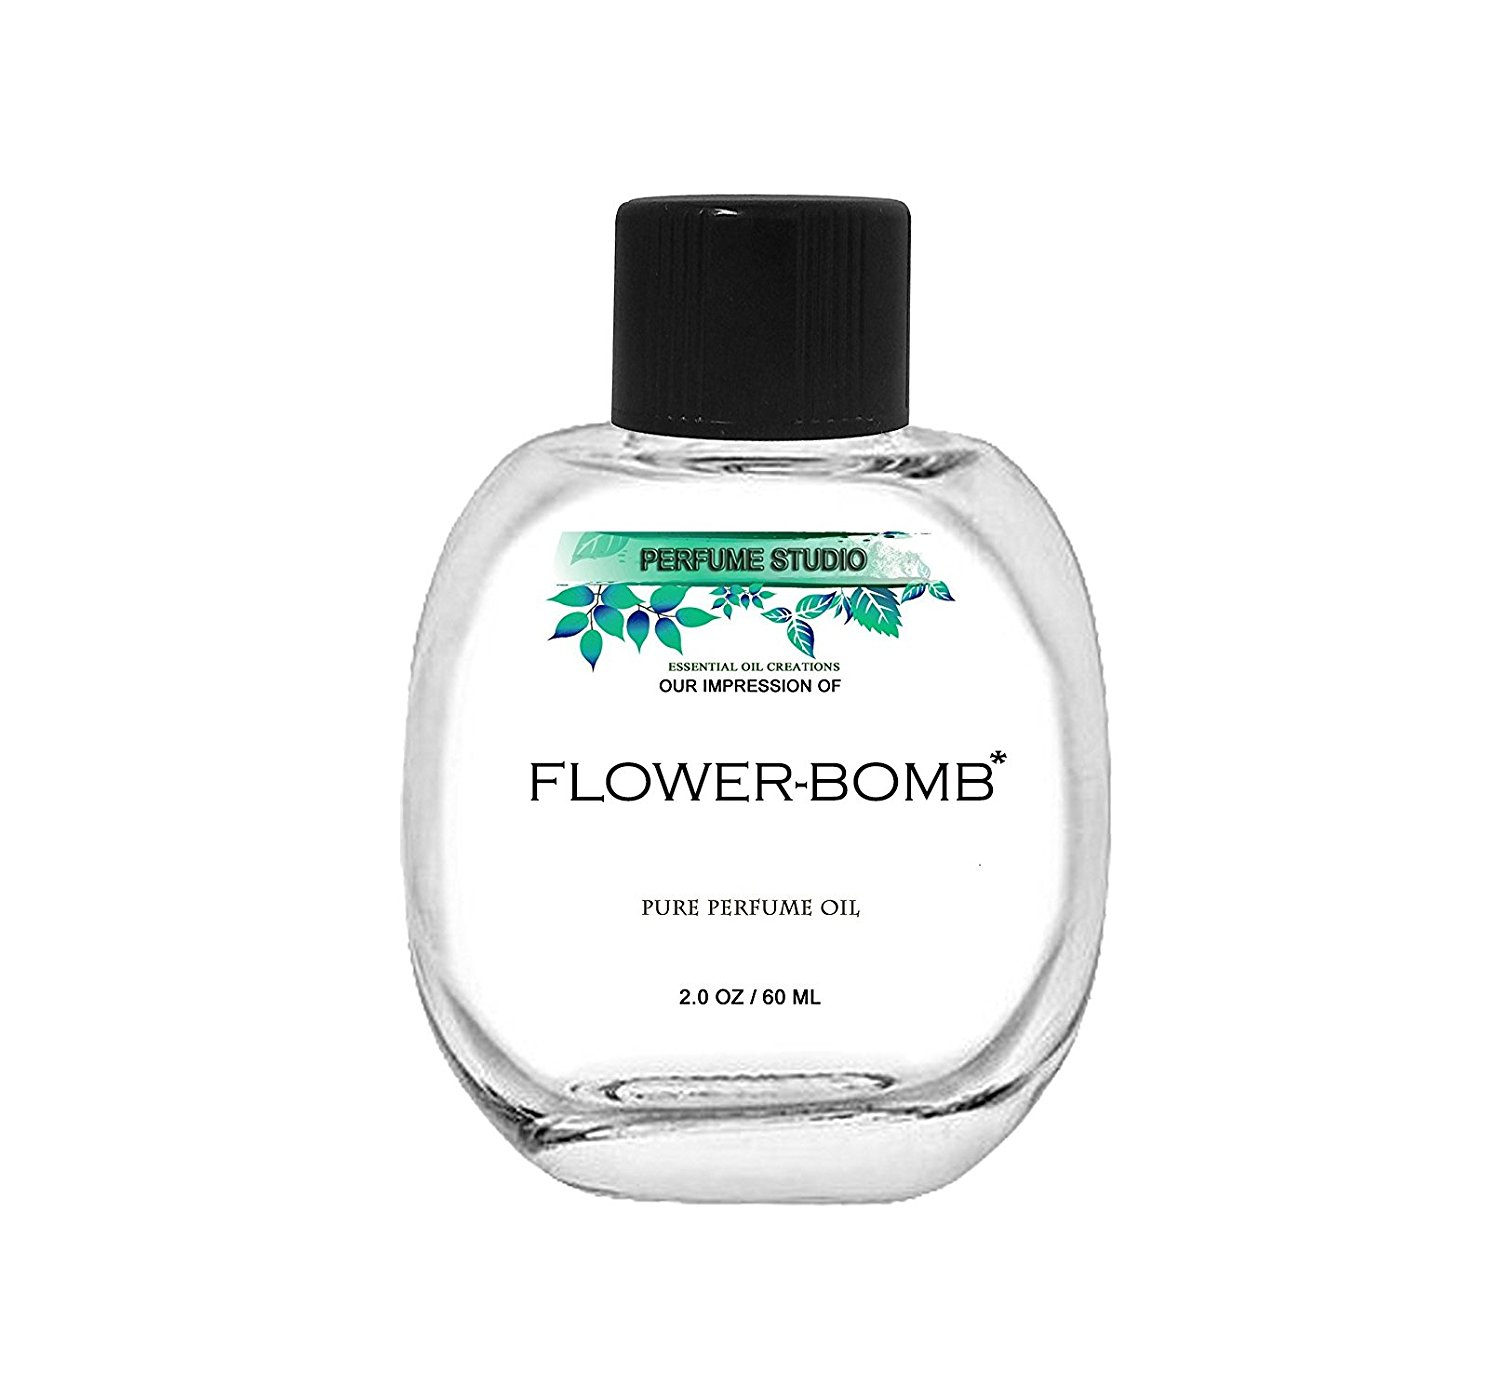 Cheap perfume oil find perfume oil deals on line at alibaba get quotations perfume studio impression perfume oil with similar fragrance accords to flowerbombewomen parfum izmirmasajfo